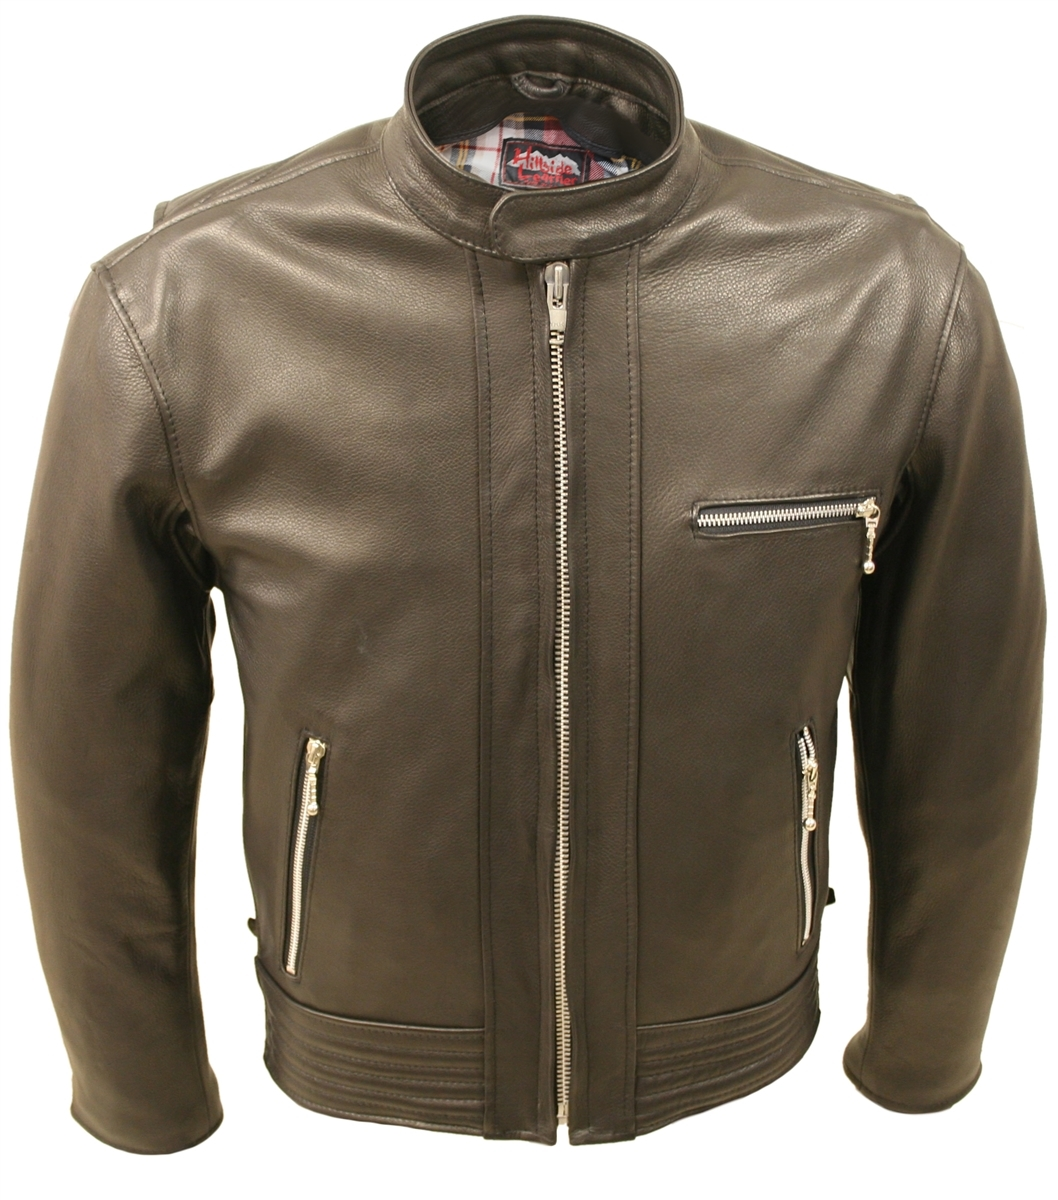 Hillside USA Padded Racer Jacket (Black)   Introducing a new casual leather jacket that combines distinct design and timeless style with Hillside USA Leather's commitment to quality craftsmanship.